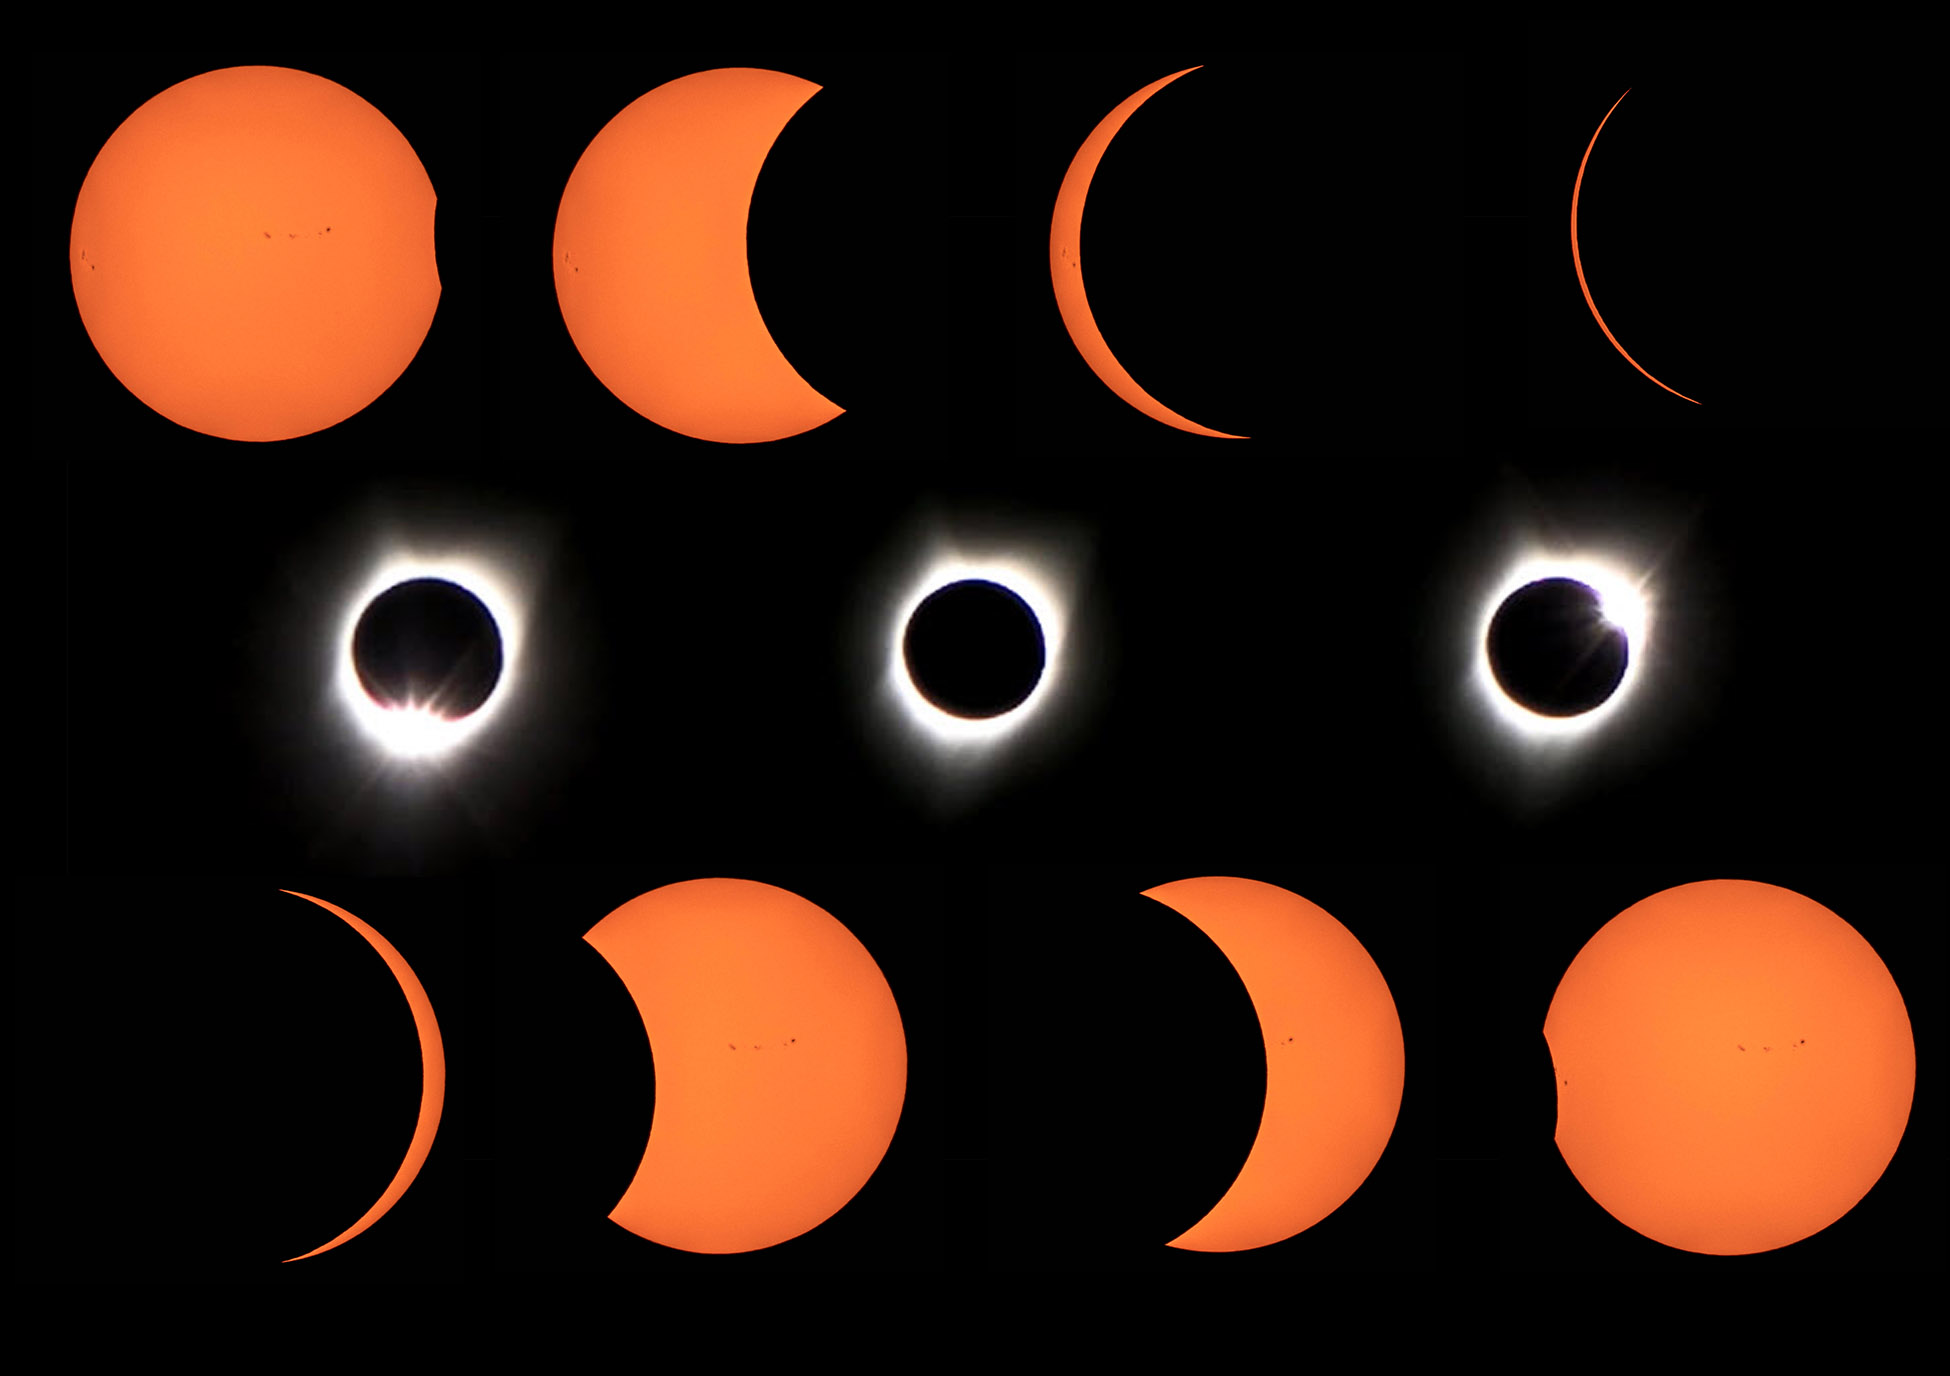 21 August 2017 - Oregon Albany - Solar Eclipse Planch10